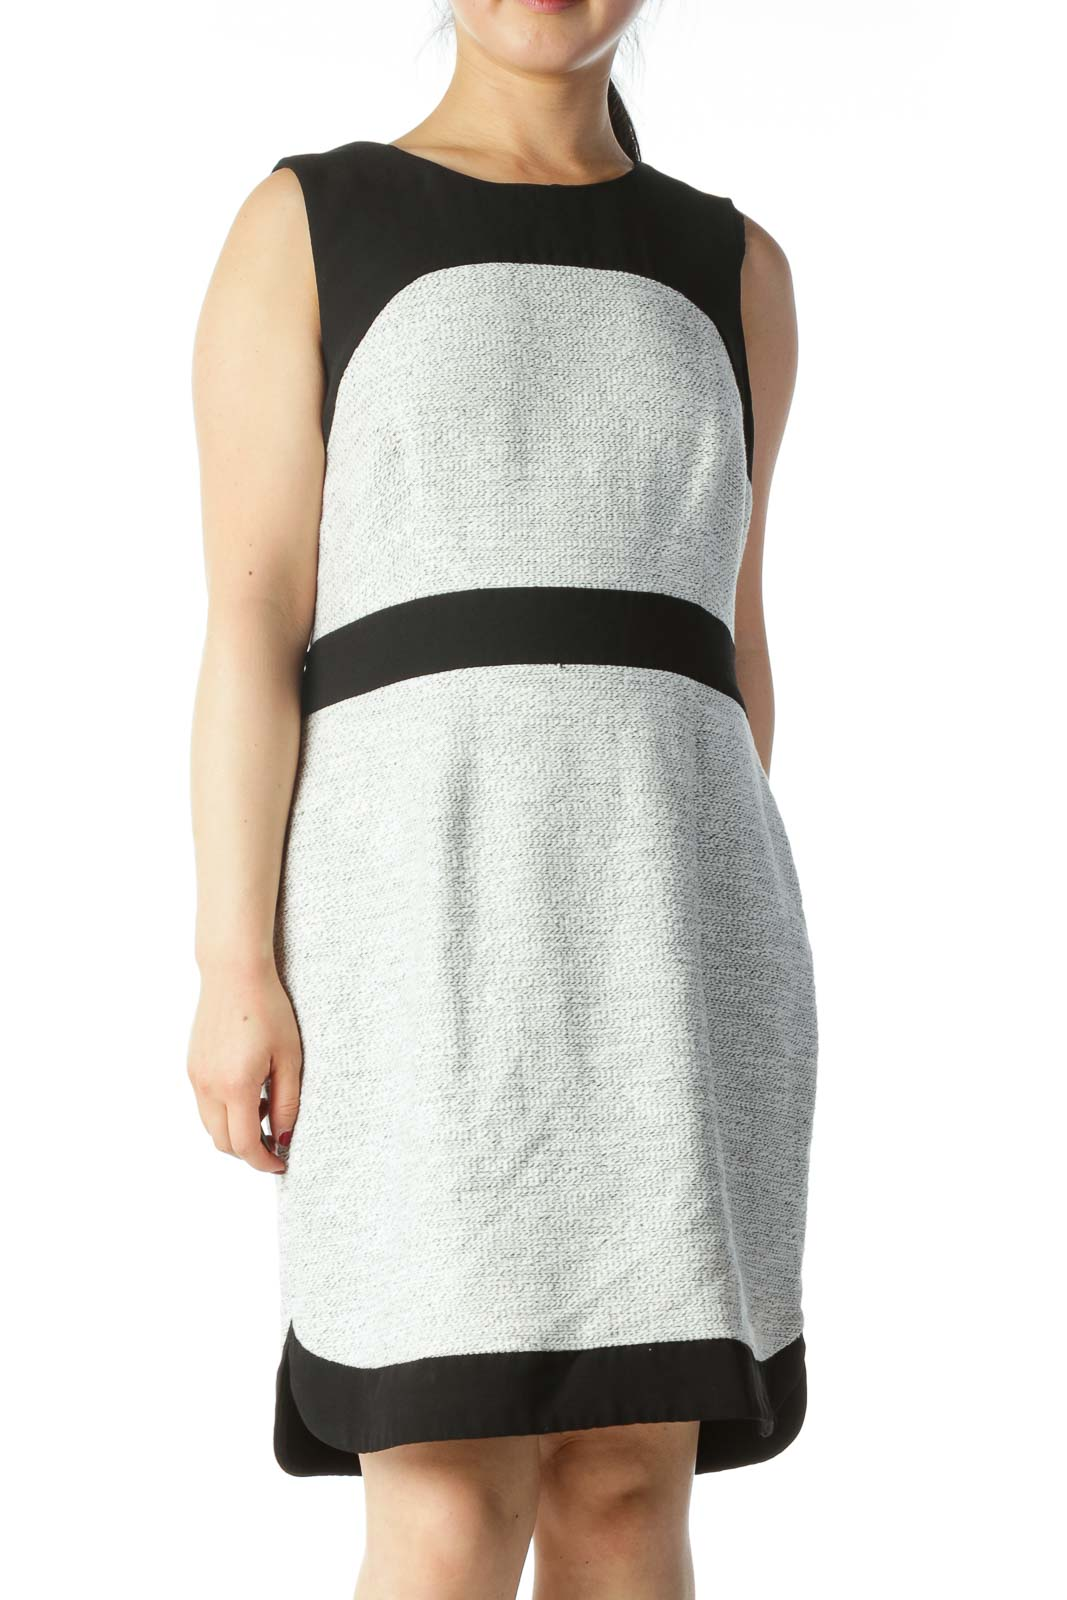 Black and White Sleeveless Knit Dress